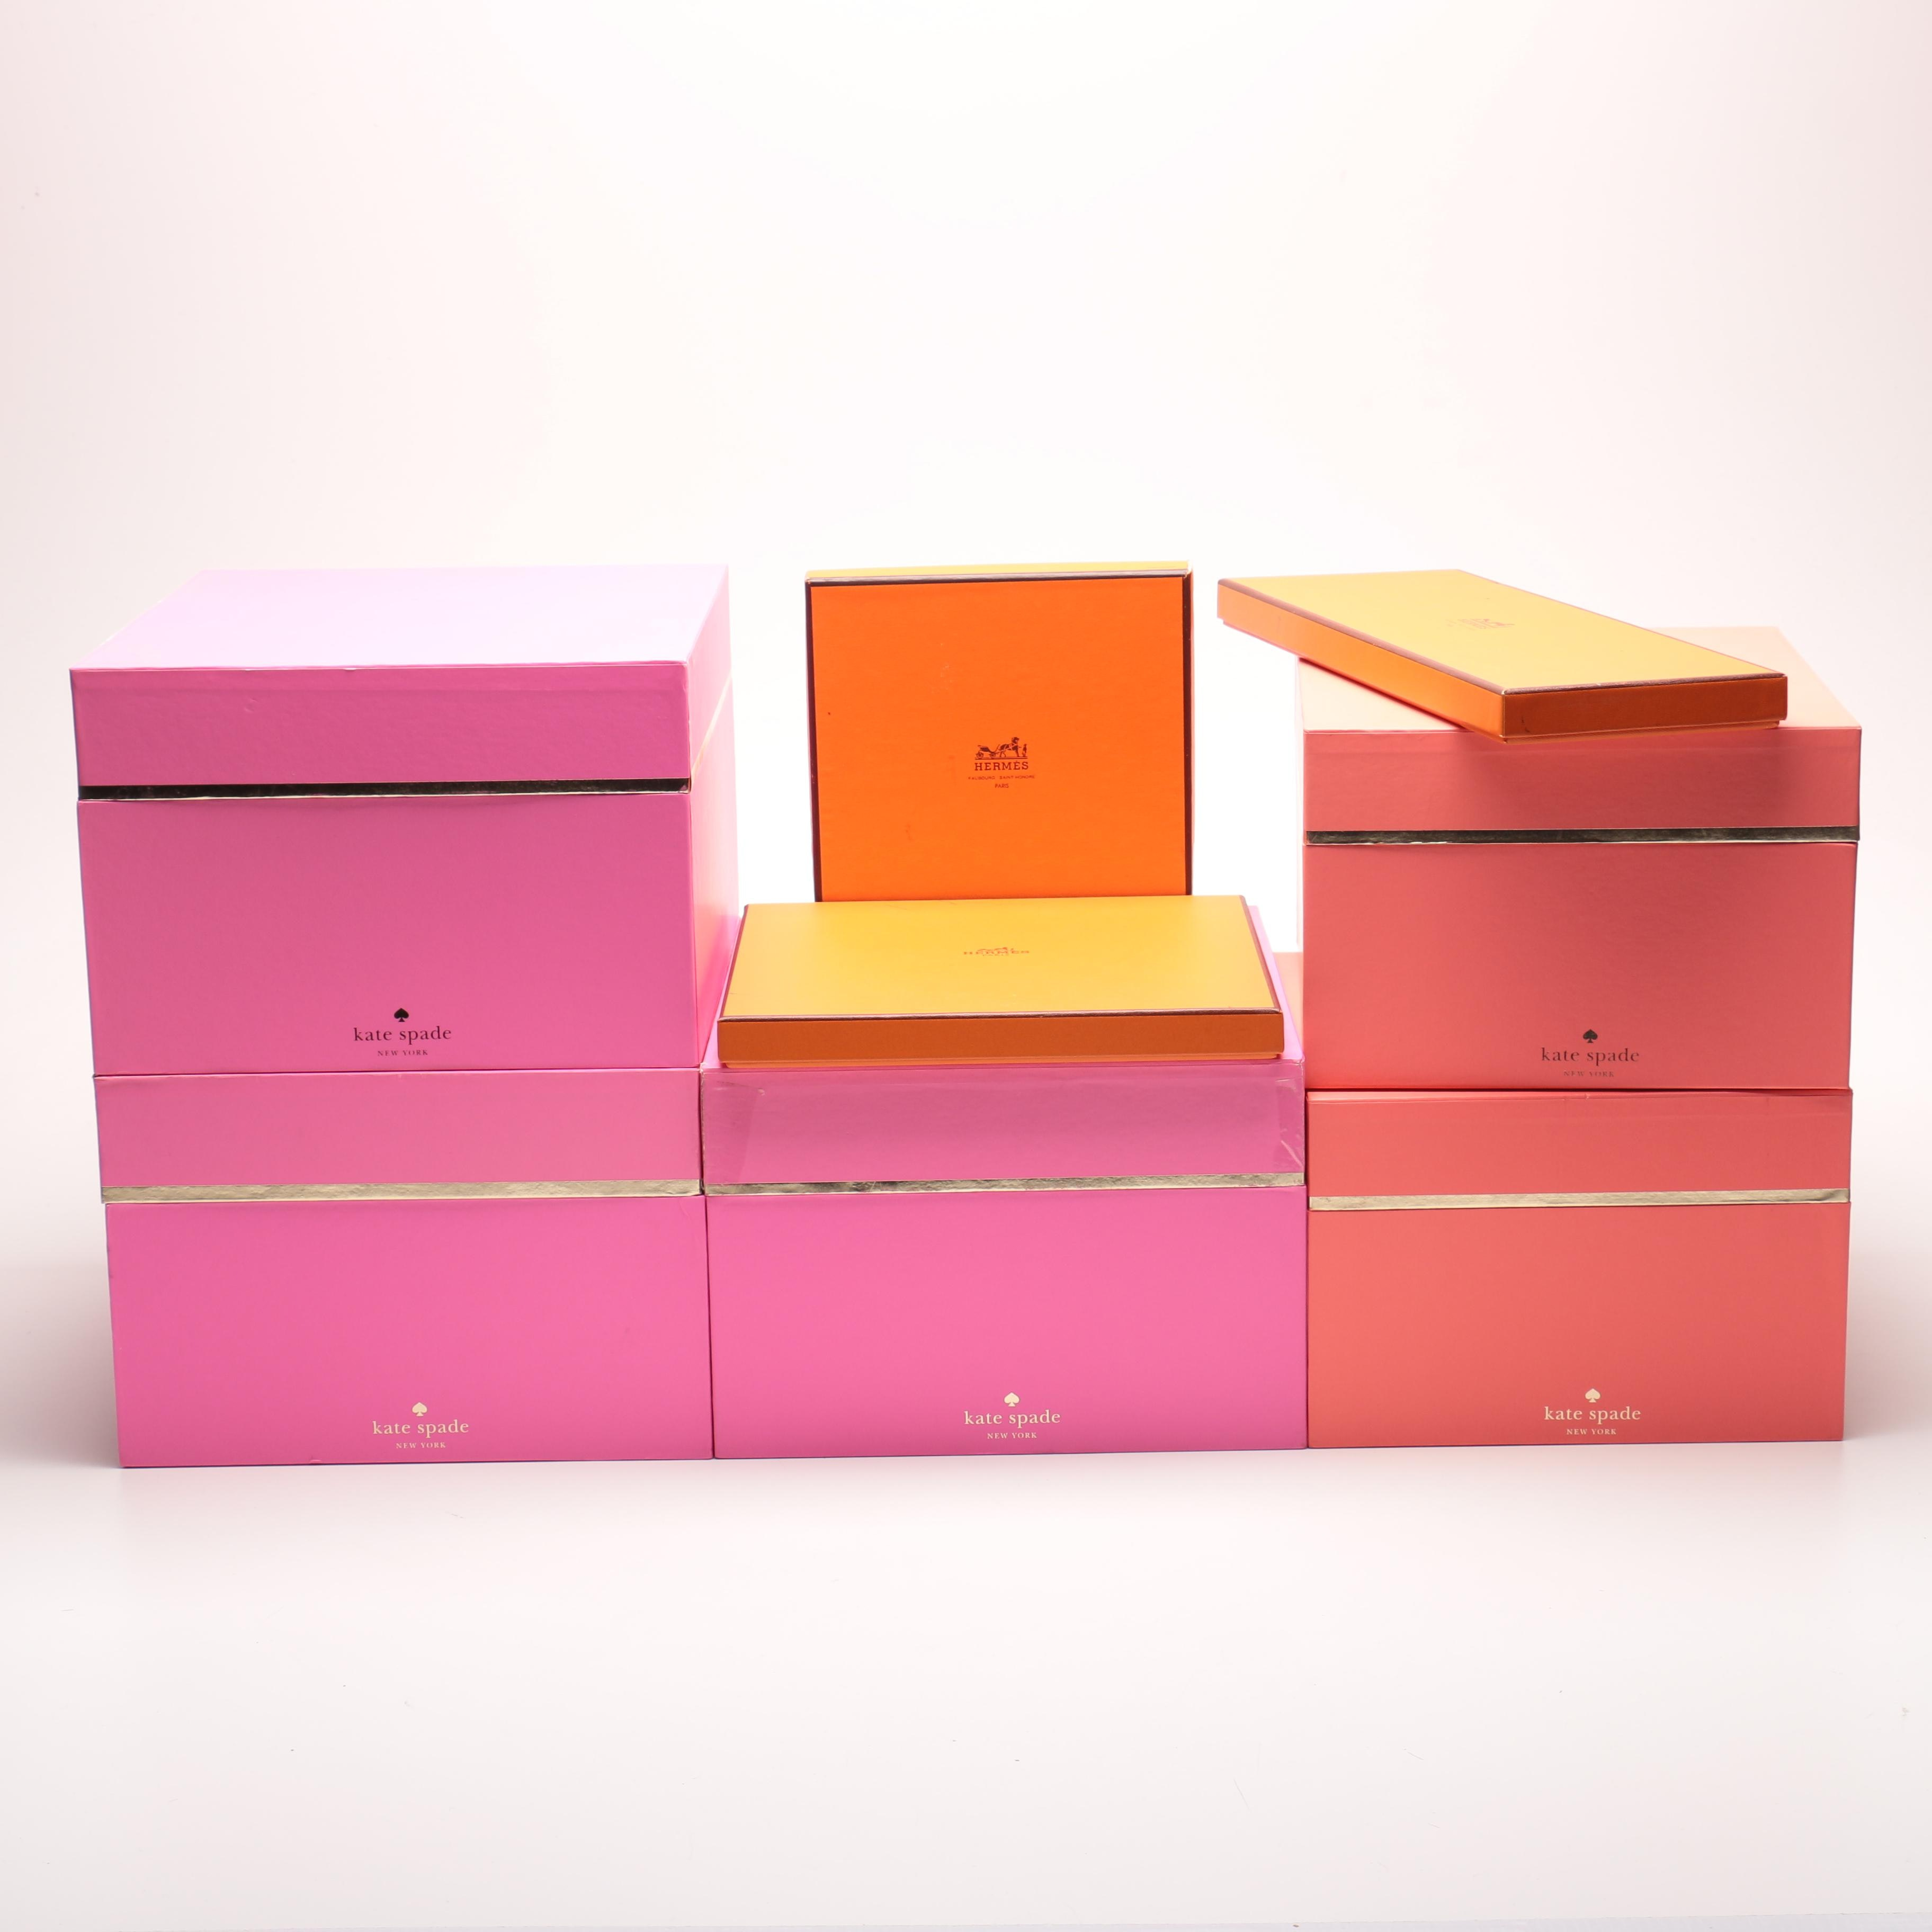 Charmant Kate Spade And Hermès Storage Boxes ...